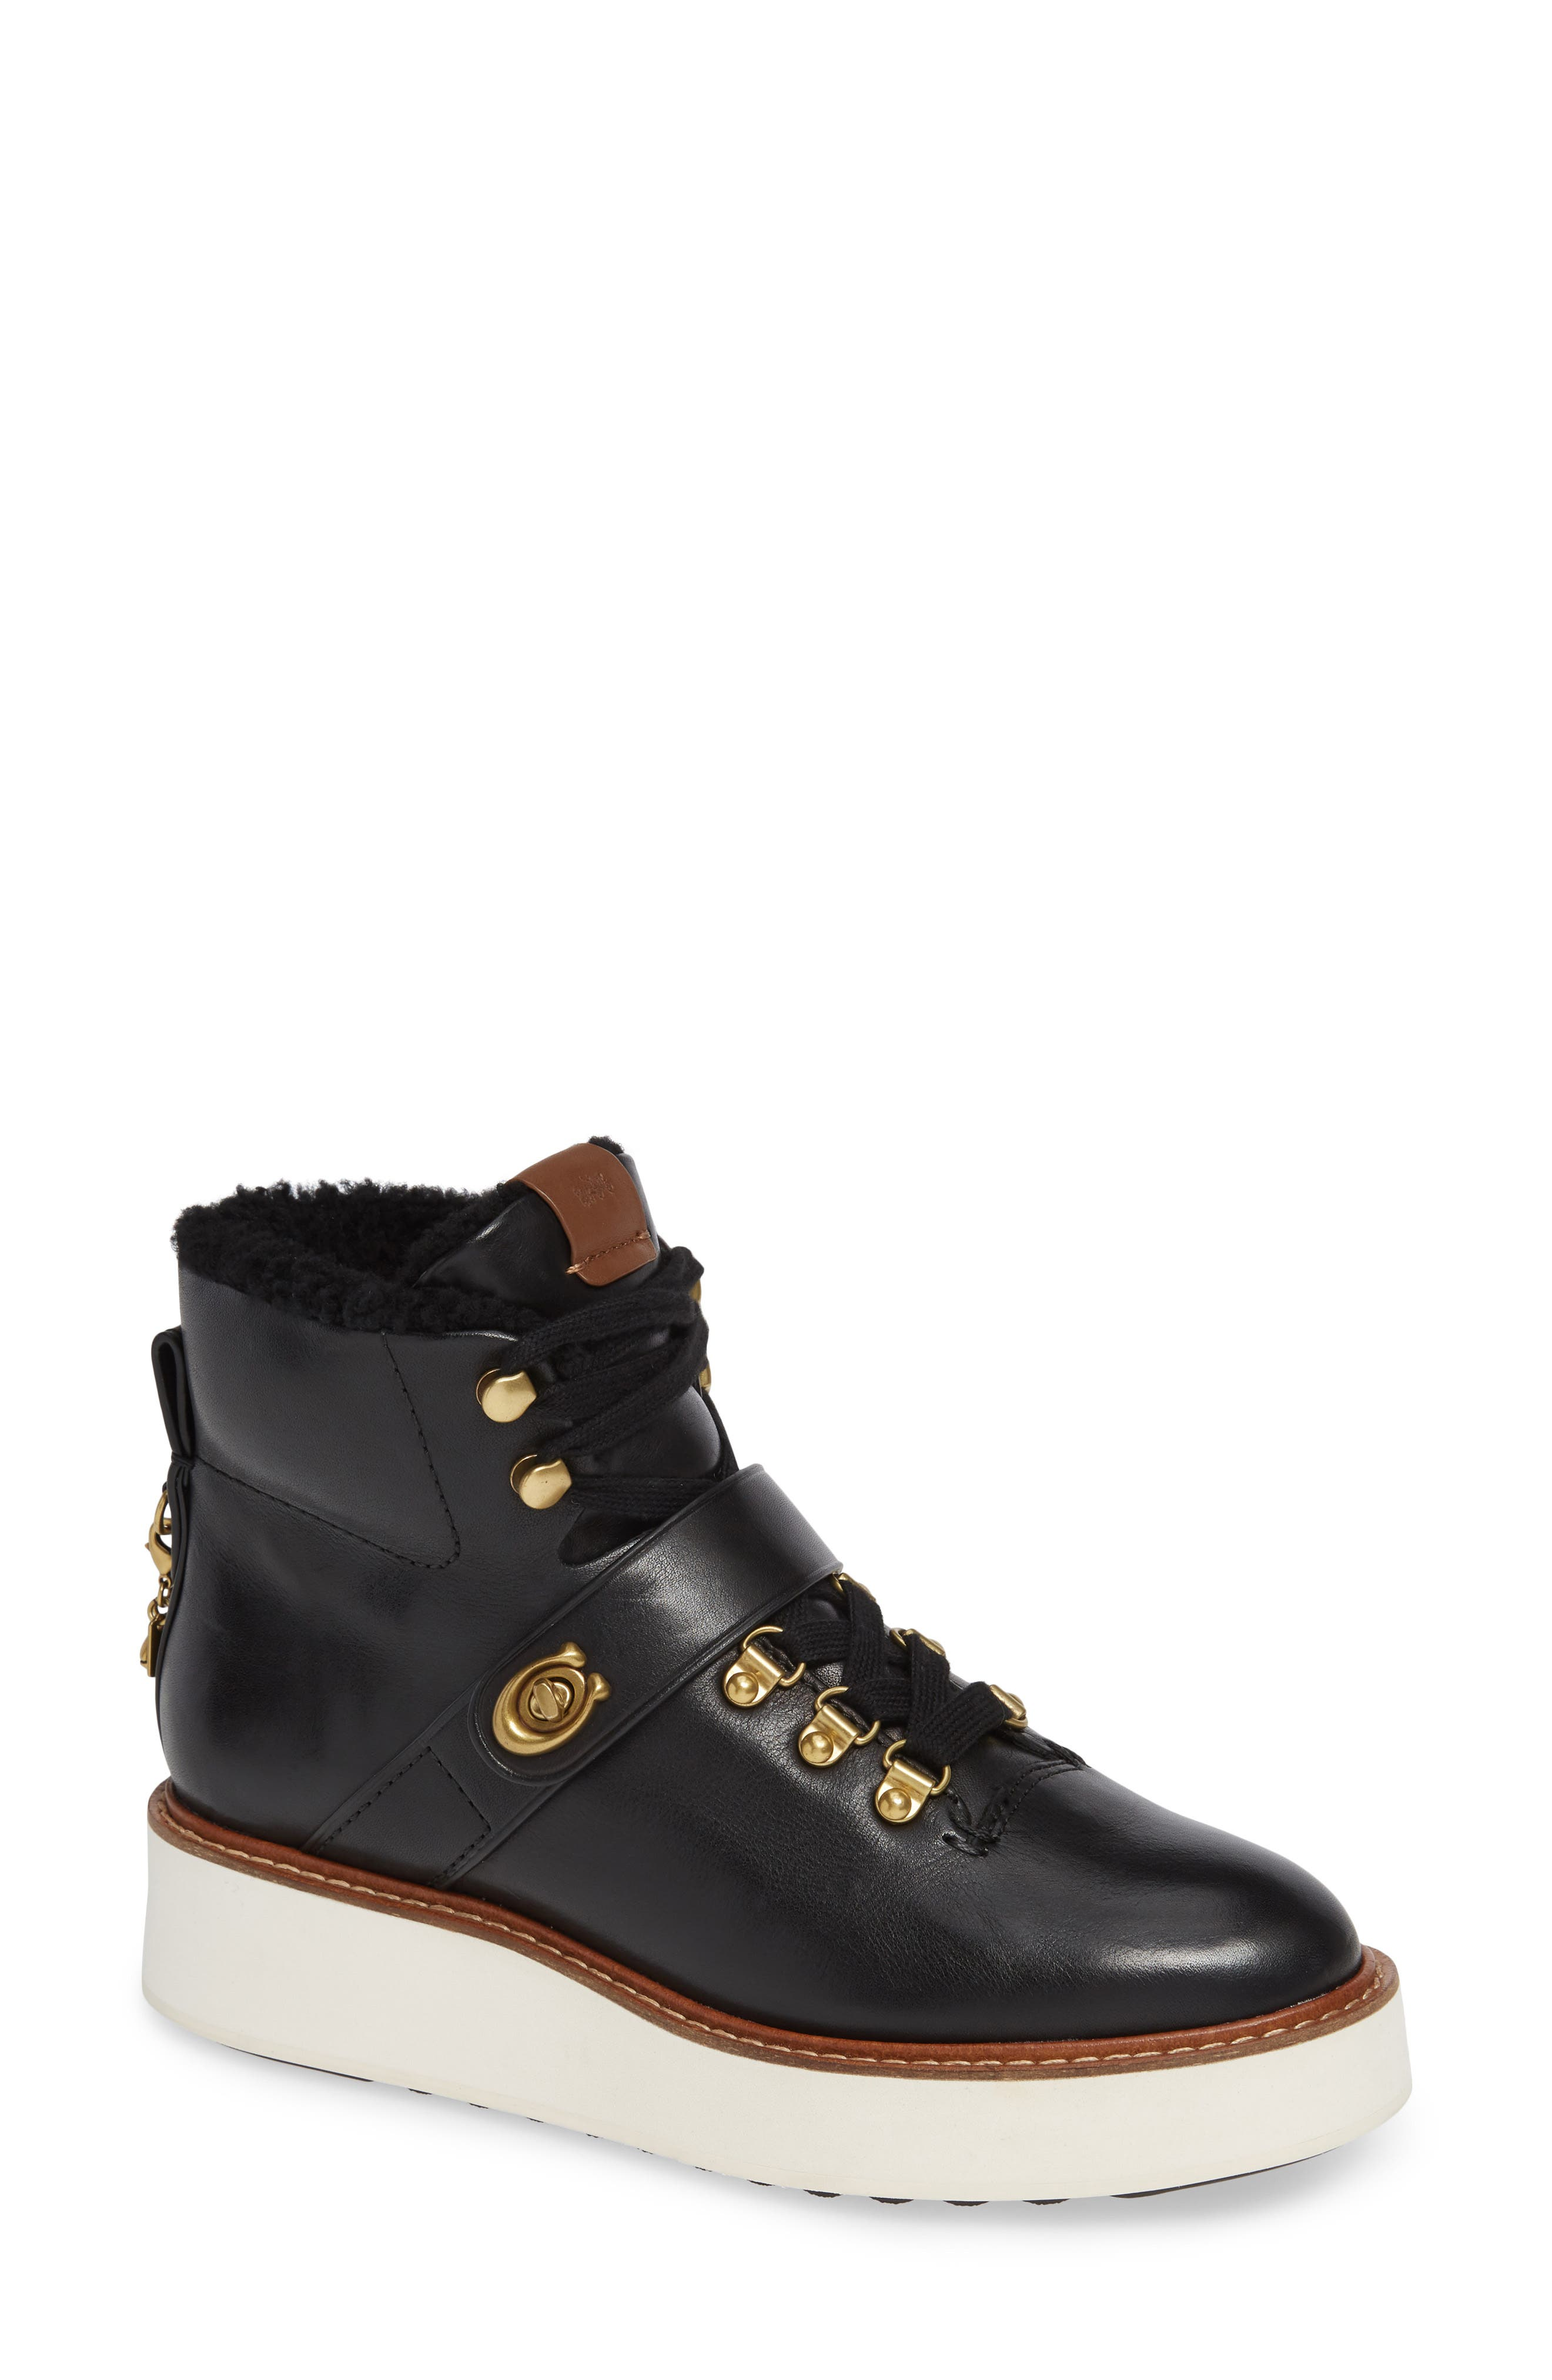 Urban Hiker Genuine Shearling Lined Bootie,                             Main thumbnail 1, color,                             001